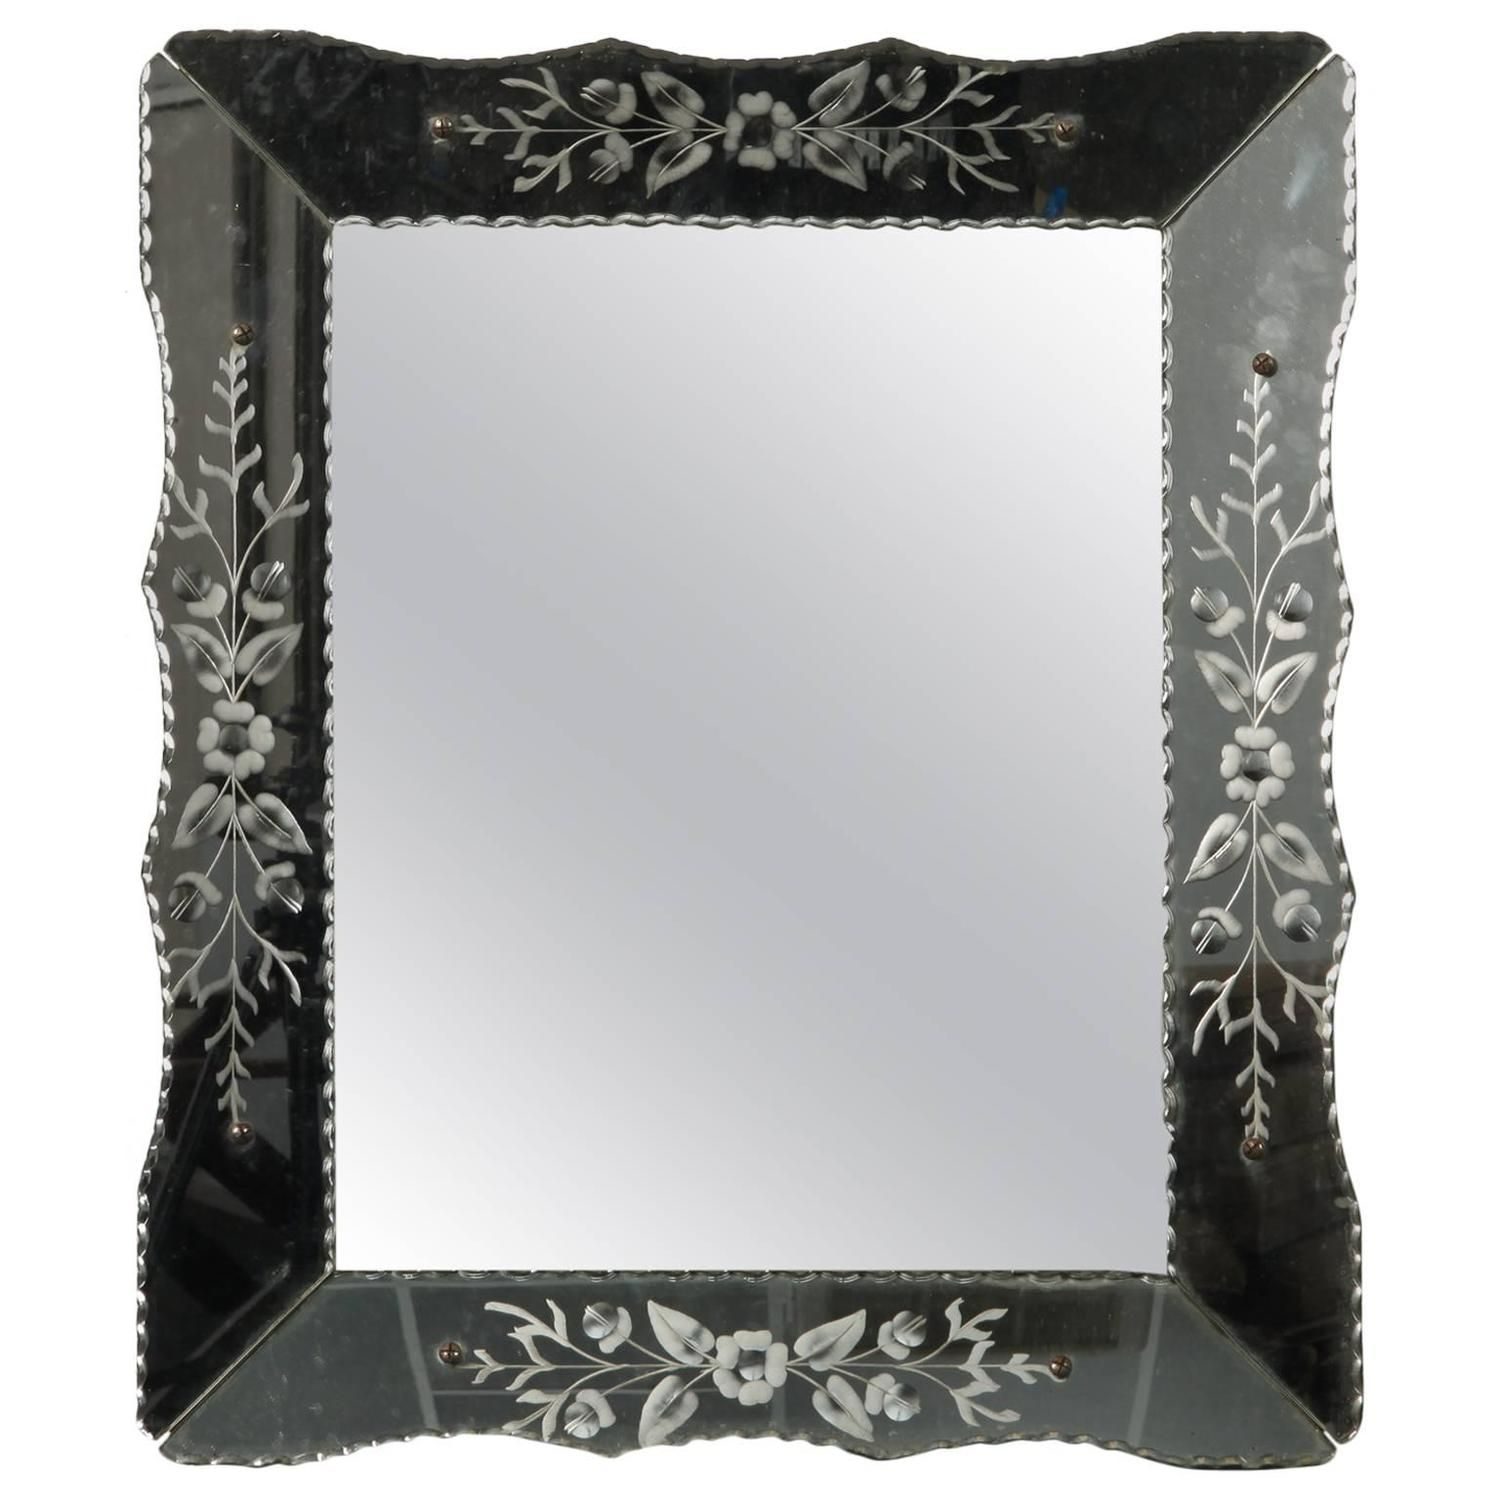 Art Deco Era Venetian Mirror - From A Unique Collection